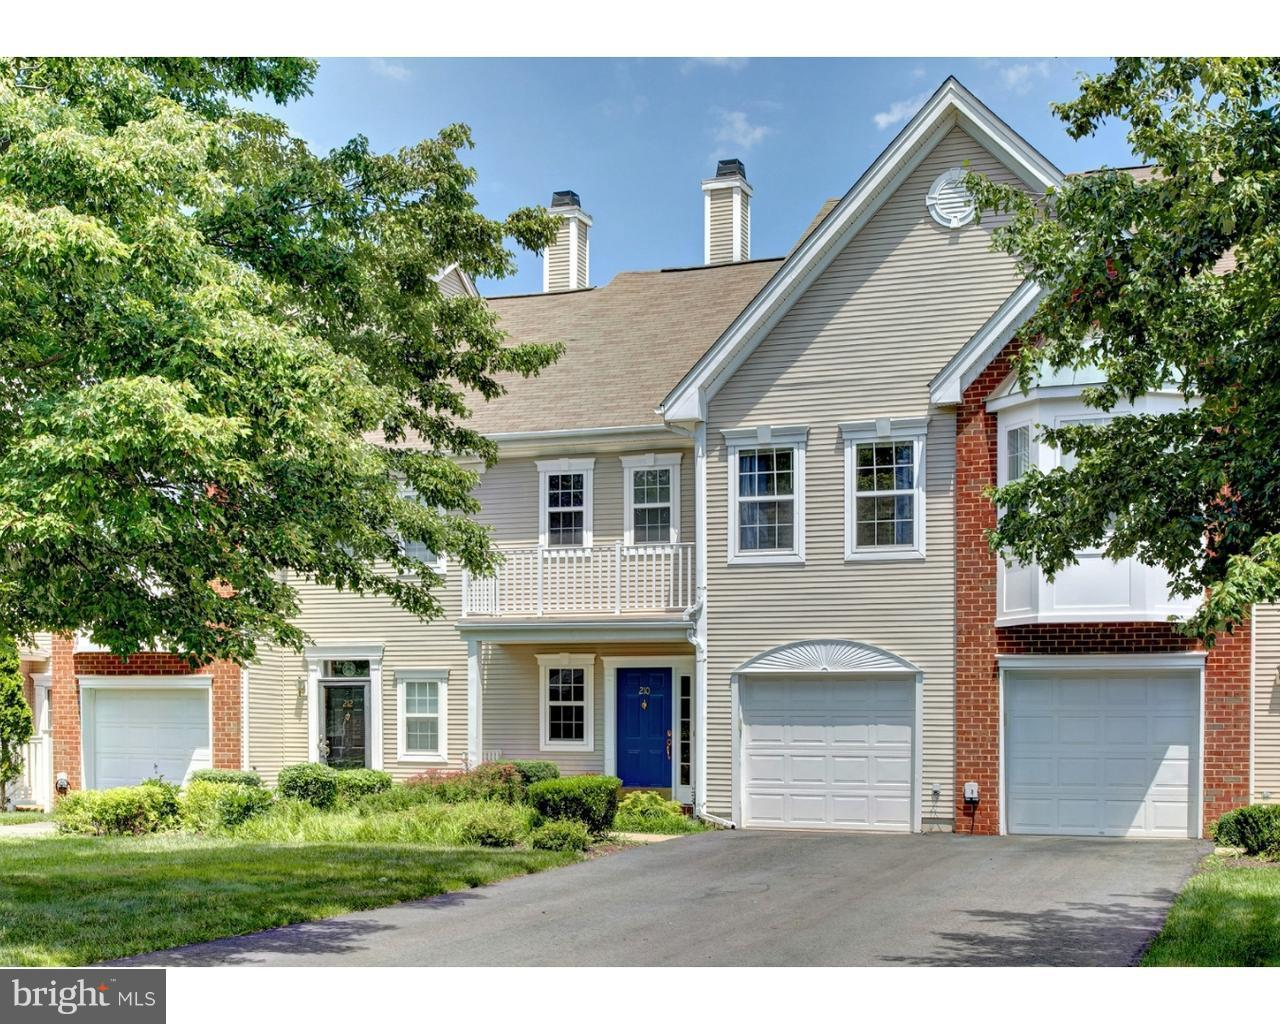 210 DEER RUN CT, PENNINGTON, NJ 08534